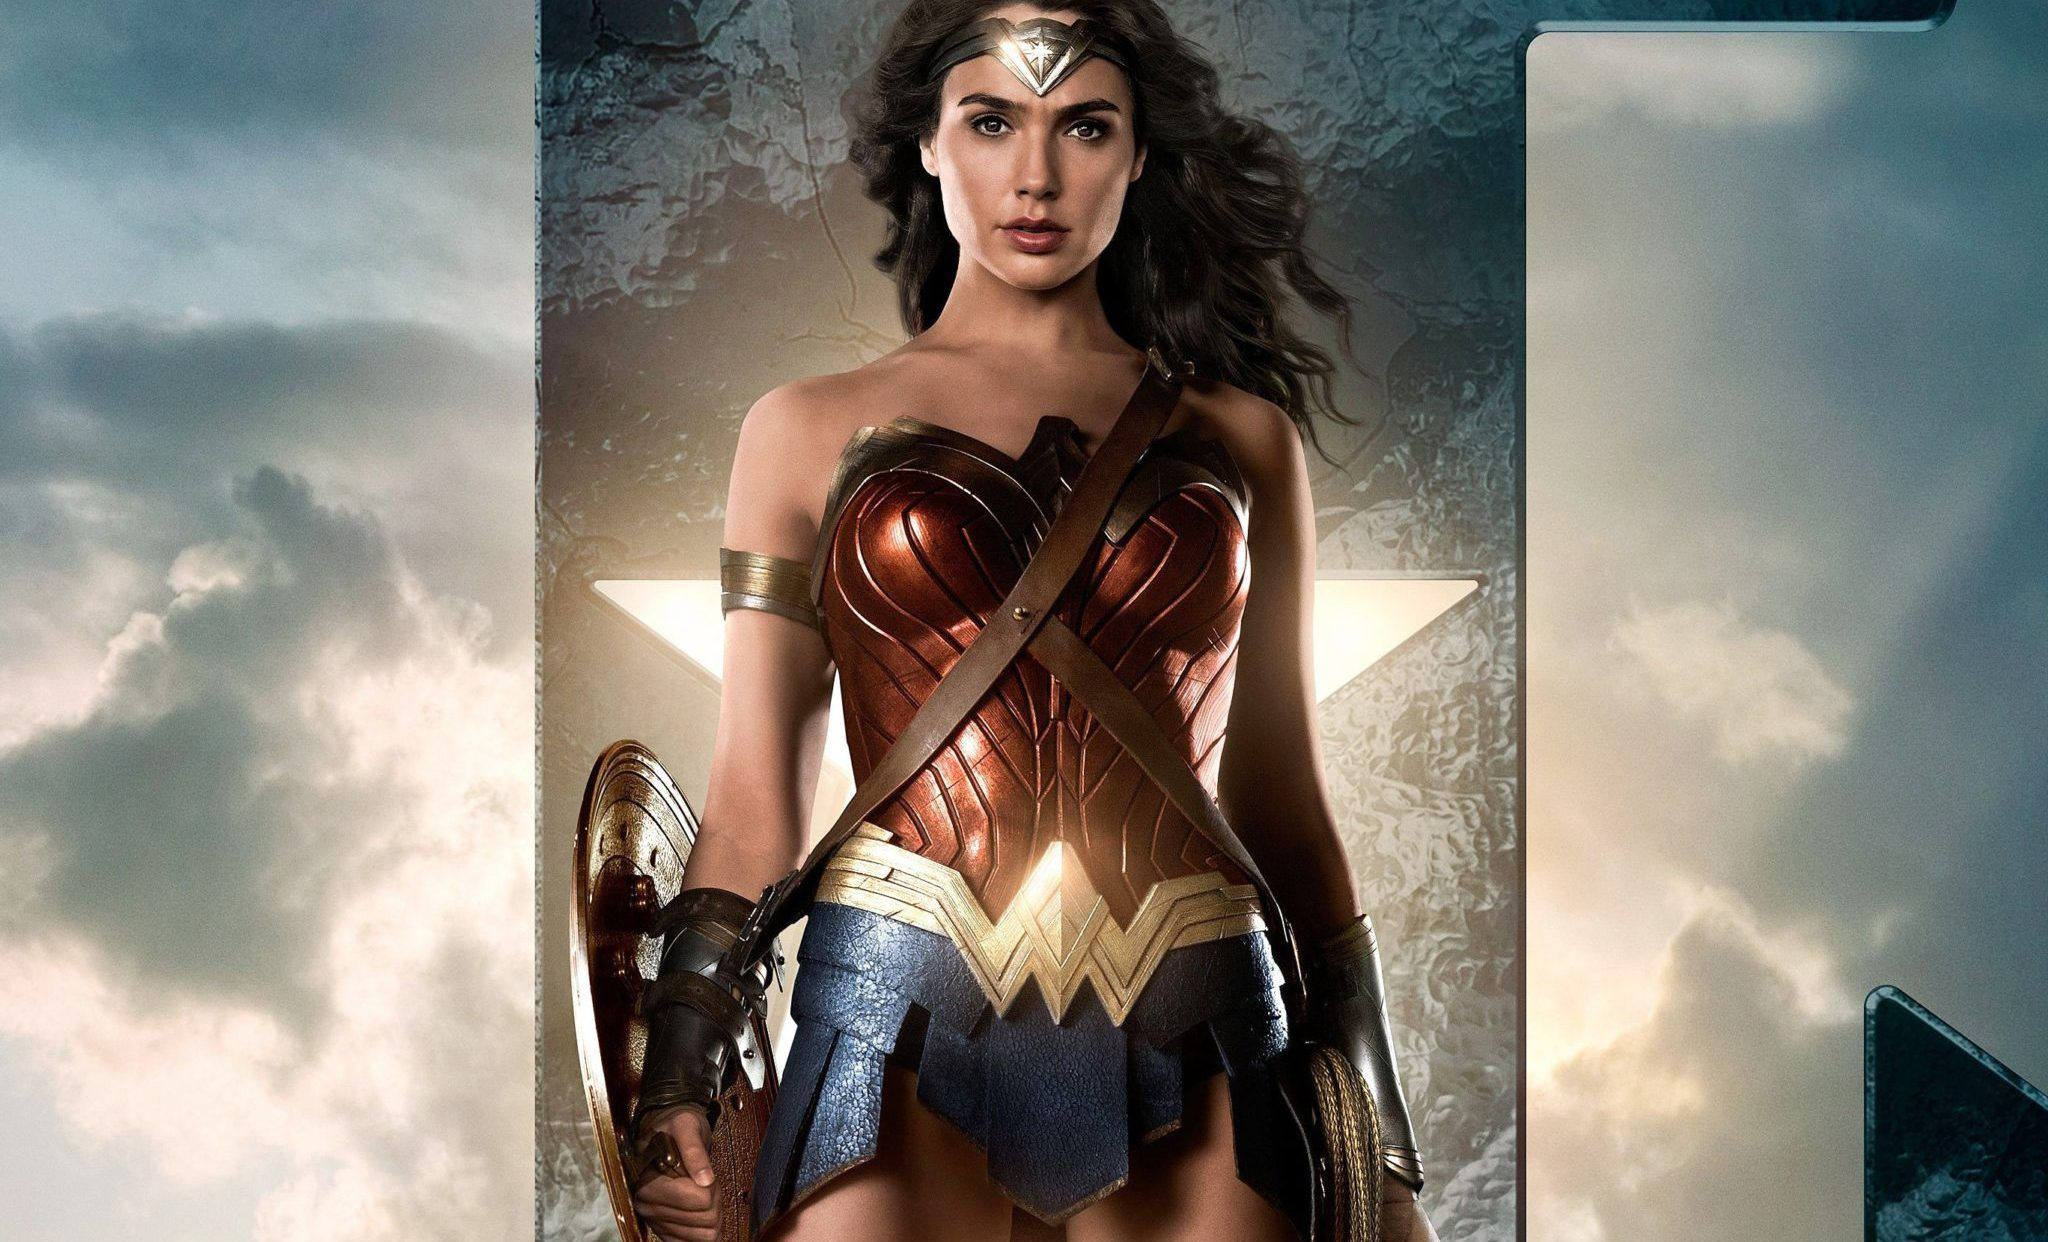 Gal Gadot Wonder Woman In Justice League Hd Wallpapers Justice League Wonder Woman Wonder Woman Movie Wonder Woman